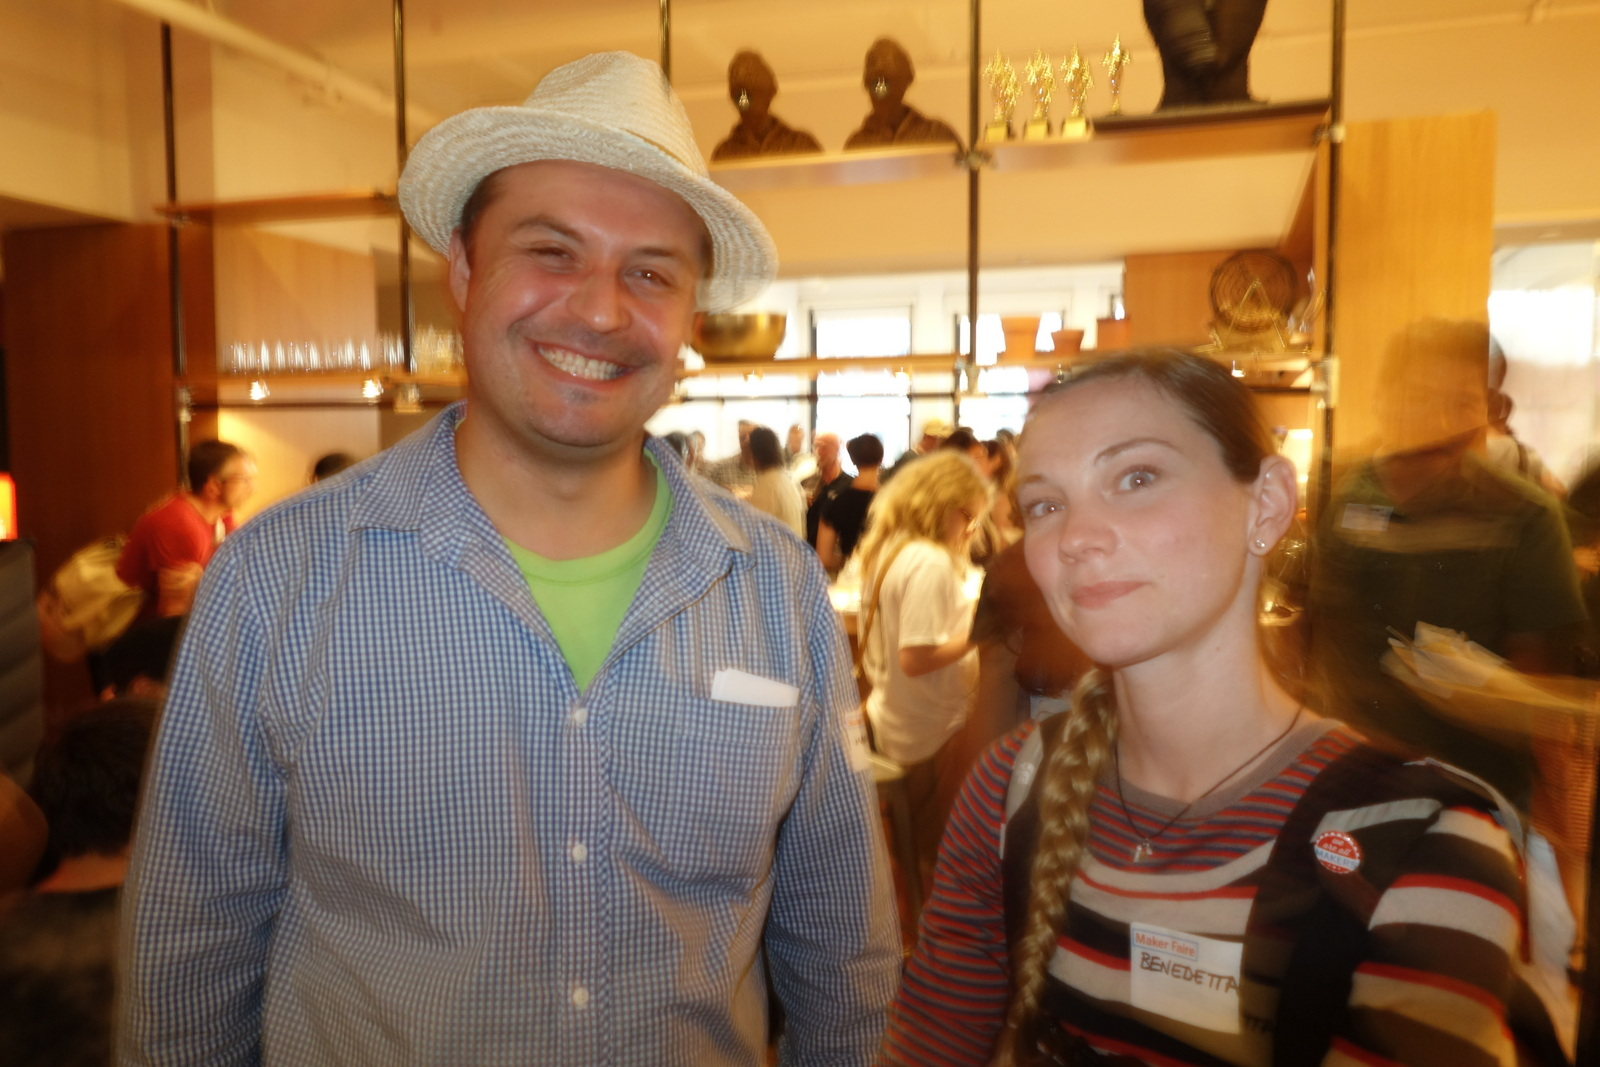 Benedetta Piantella and Marco Cosio, two of the many dozen makers who showed up to show their support. Thank you!